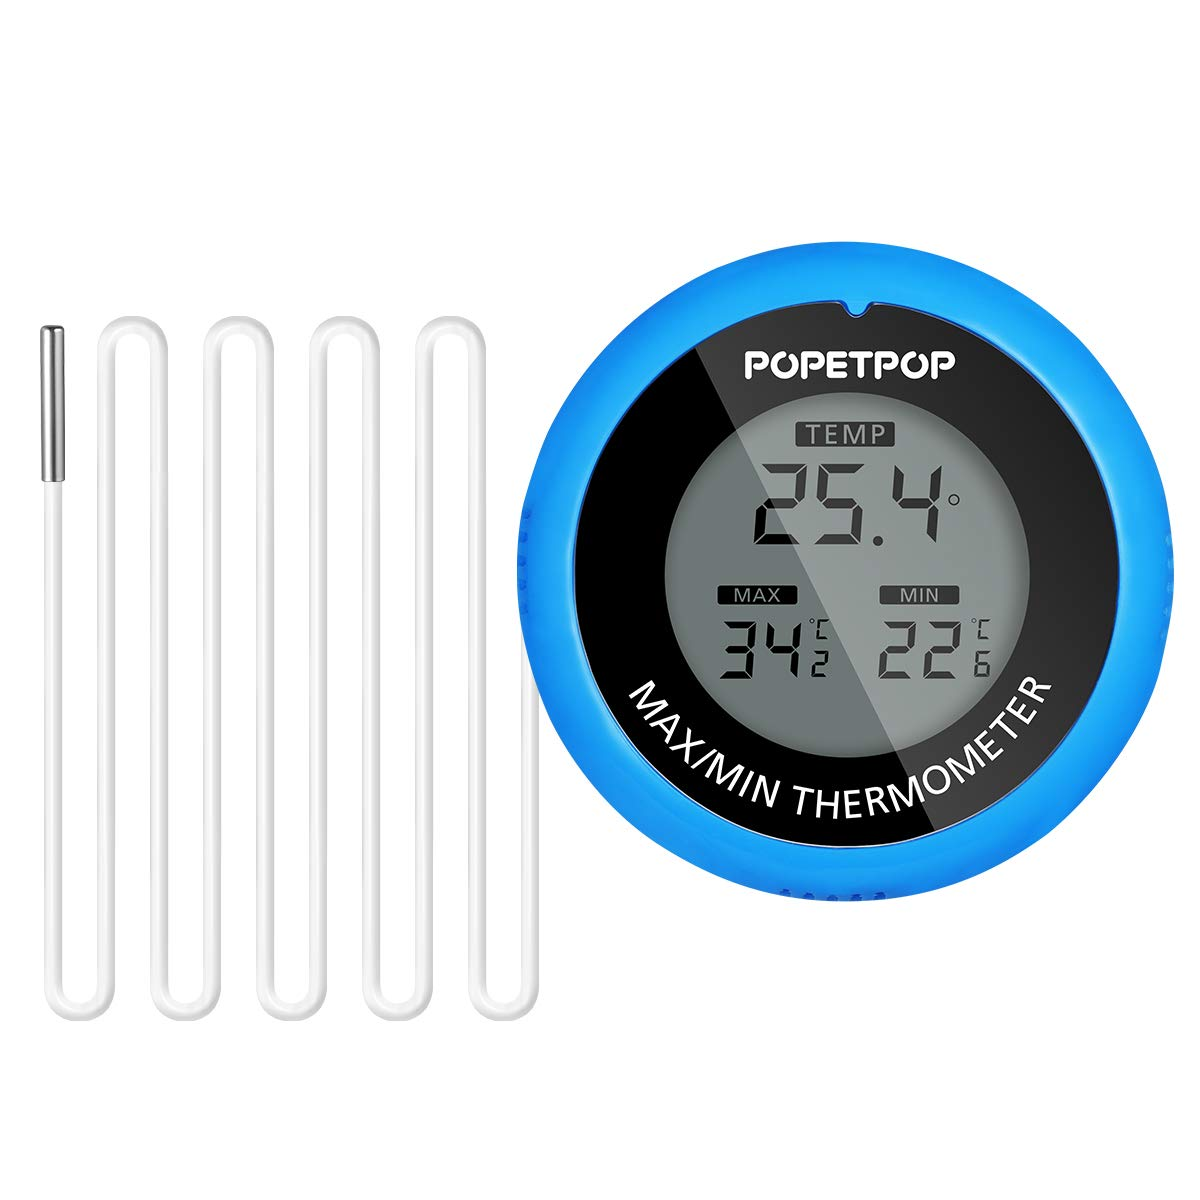 POPETPOP LCD Digital Aquarium Thermometer High Precision Digital Fish Tank Thermometer for Aquarium/Pond/Reptile Turtles Habitats (Blue) by POPETPOP